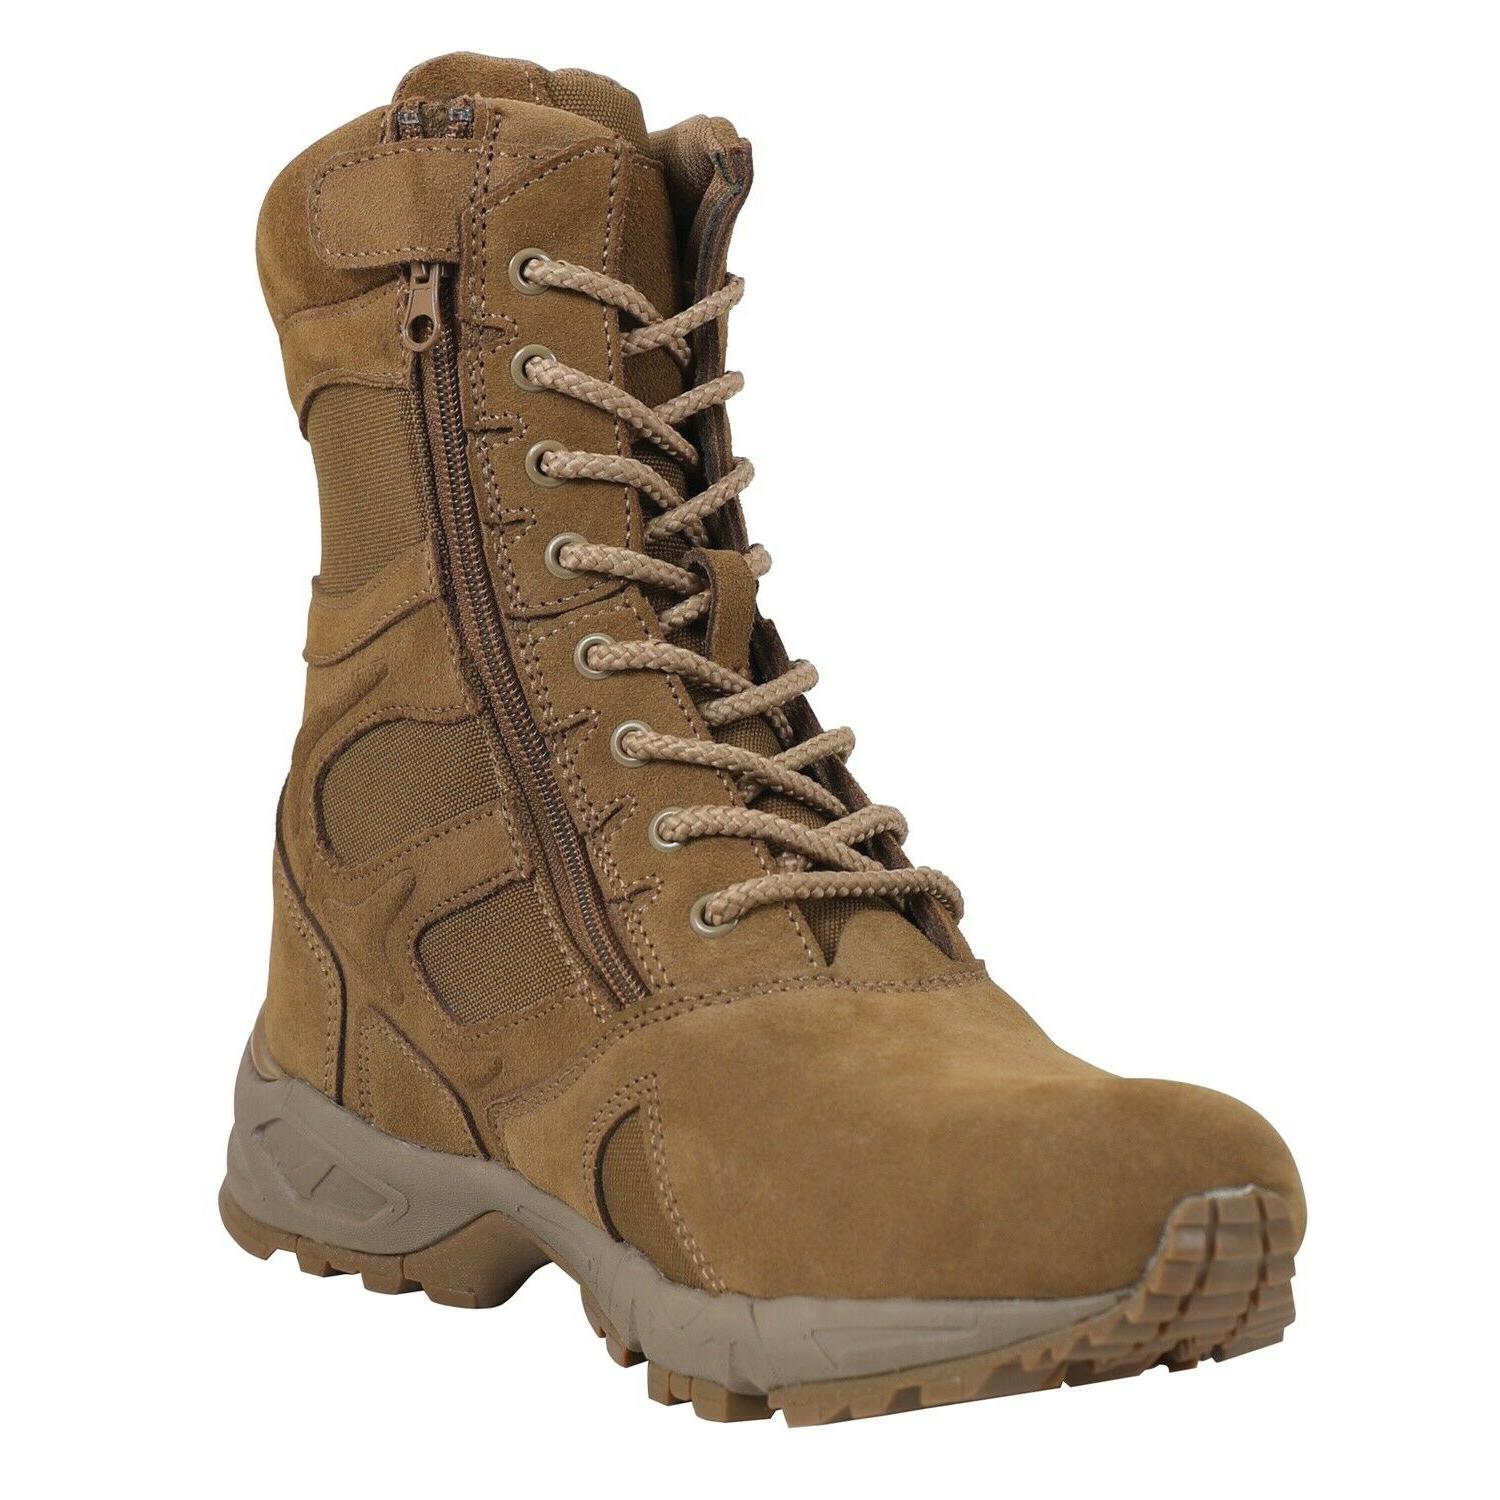 8 forced entry deployment boots side zipper